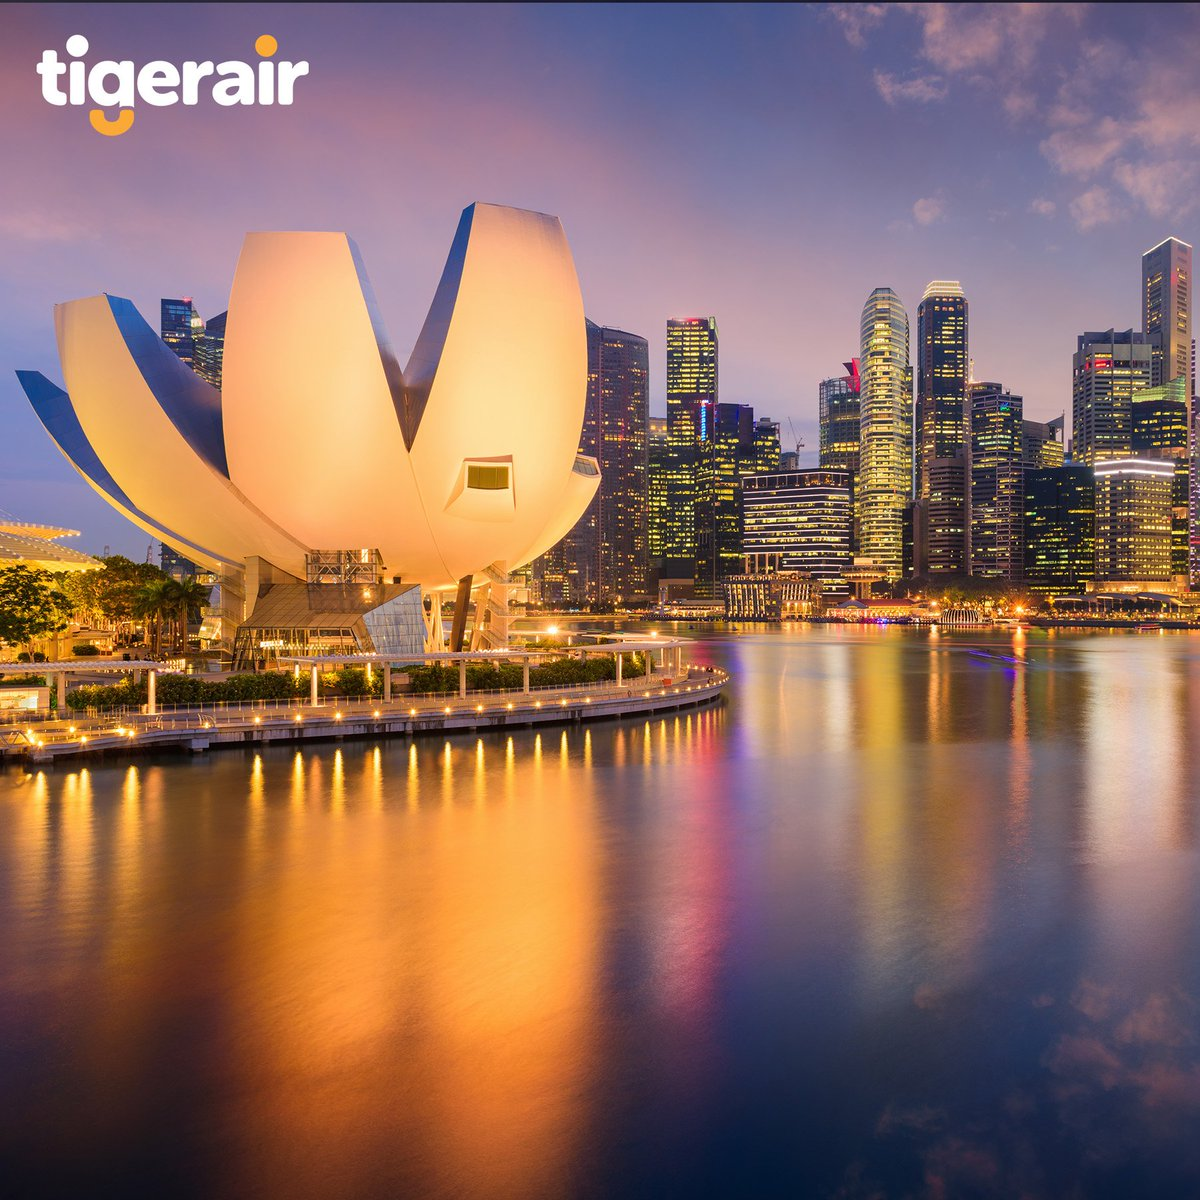 Visit Singapore's iconic buildings such as its lotus-shaped ArtScience Museum. Discover more exciting updates and deals over at @FlyScoot! https://t.co/14ay2huyng